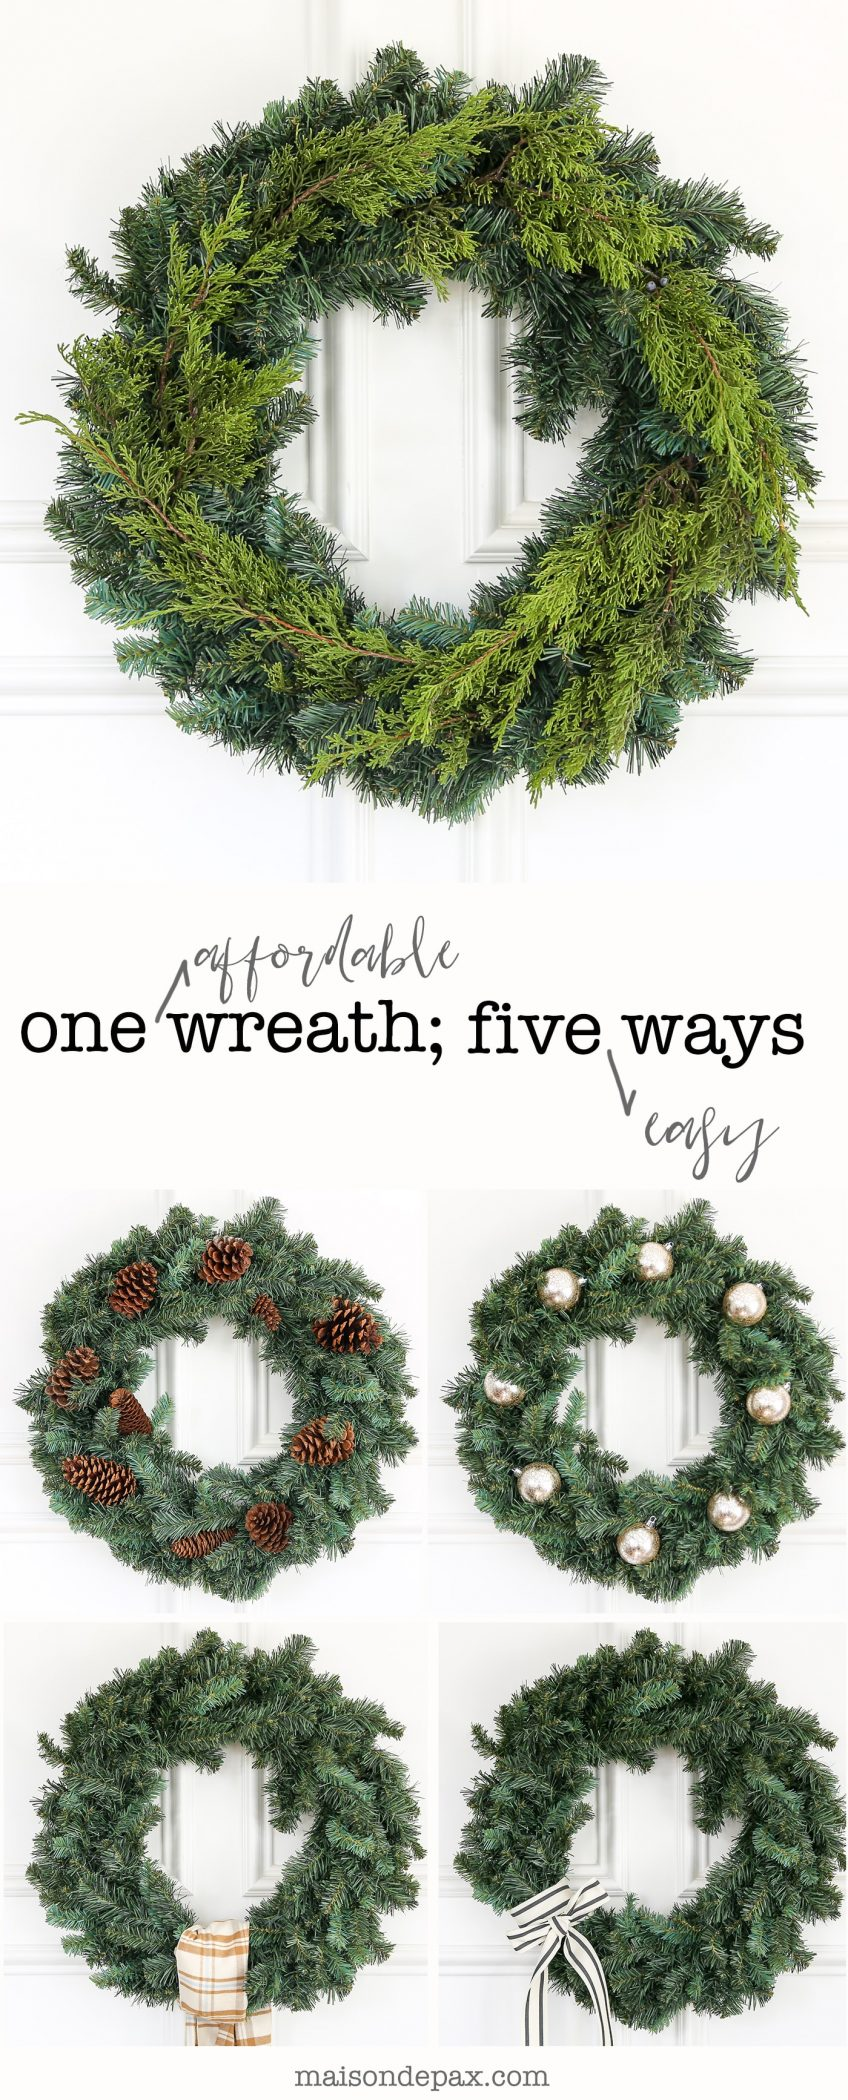 Easy wreath decorating ideas!  Find out five easy ways to decorate one affordable Christmas wreath and tips to make it perfect.  Save on storage and cost with these versatile, easy Christmas wreath ideas! #christmaswreath